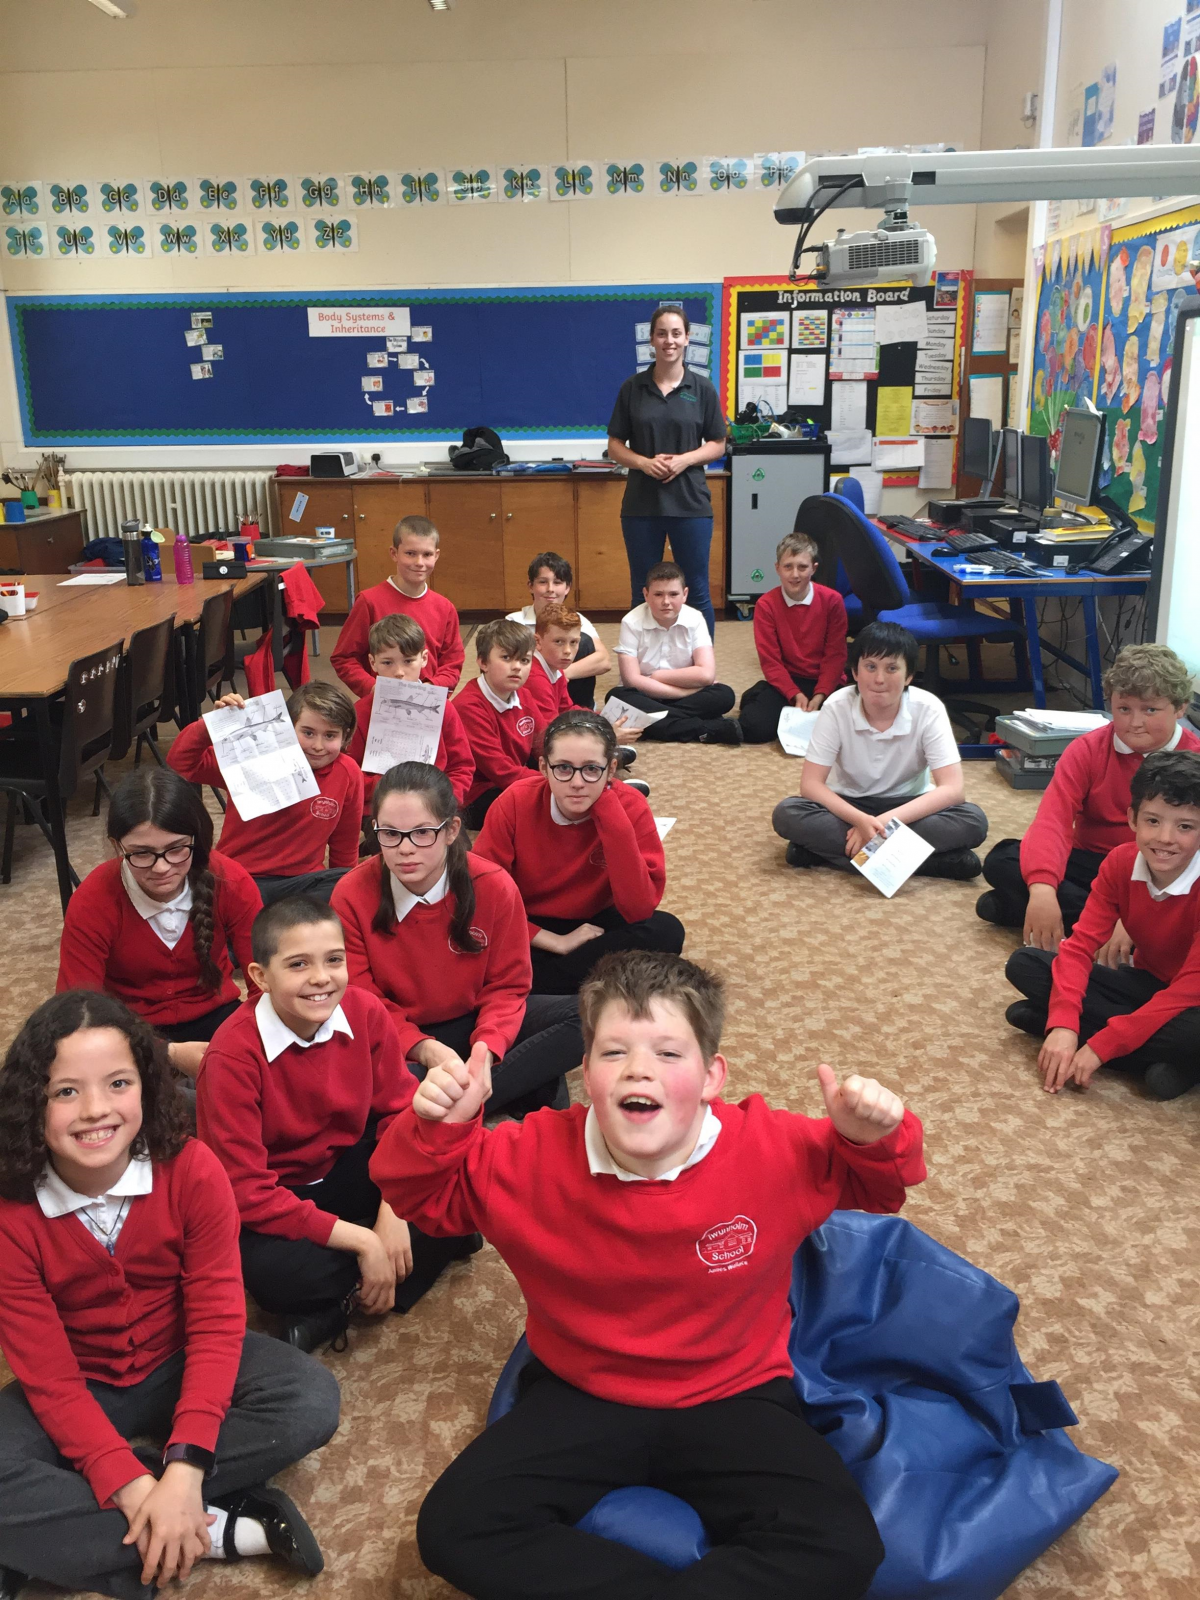 P5-7 of Twynholm Primary enjoyed their Sparling school session, filled with games and activites!